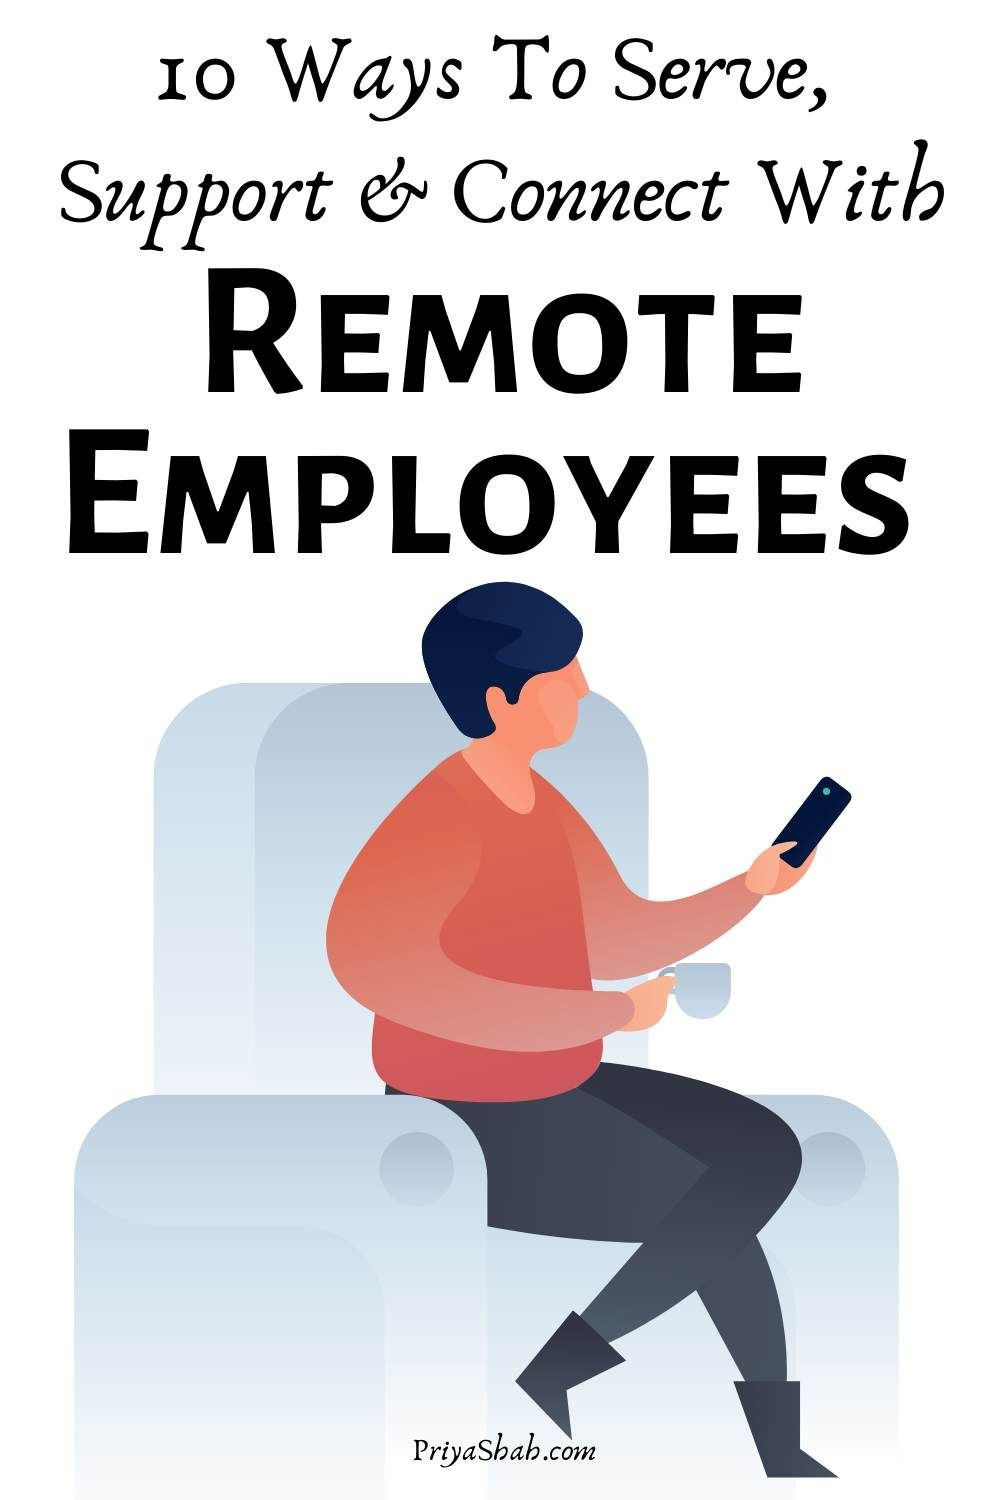 10 Ways To Serve, Support Connect With Remote Employees